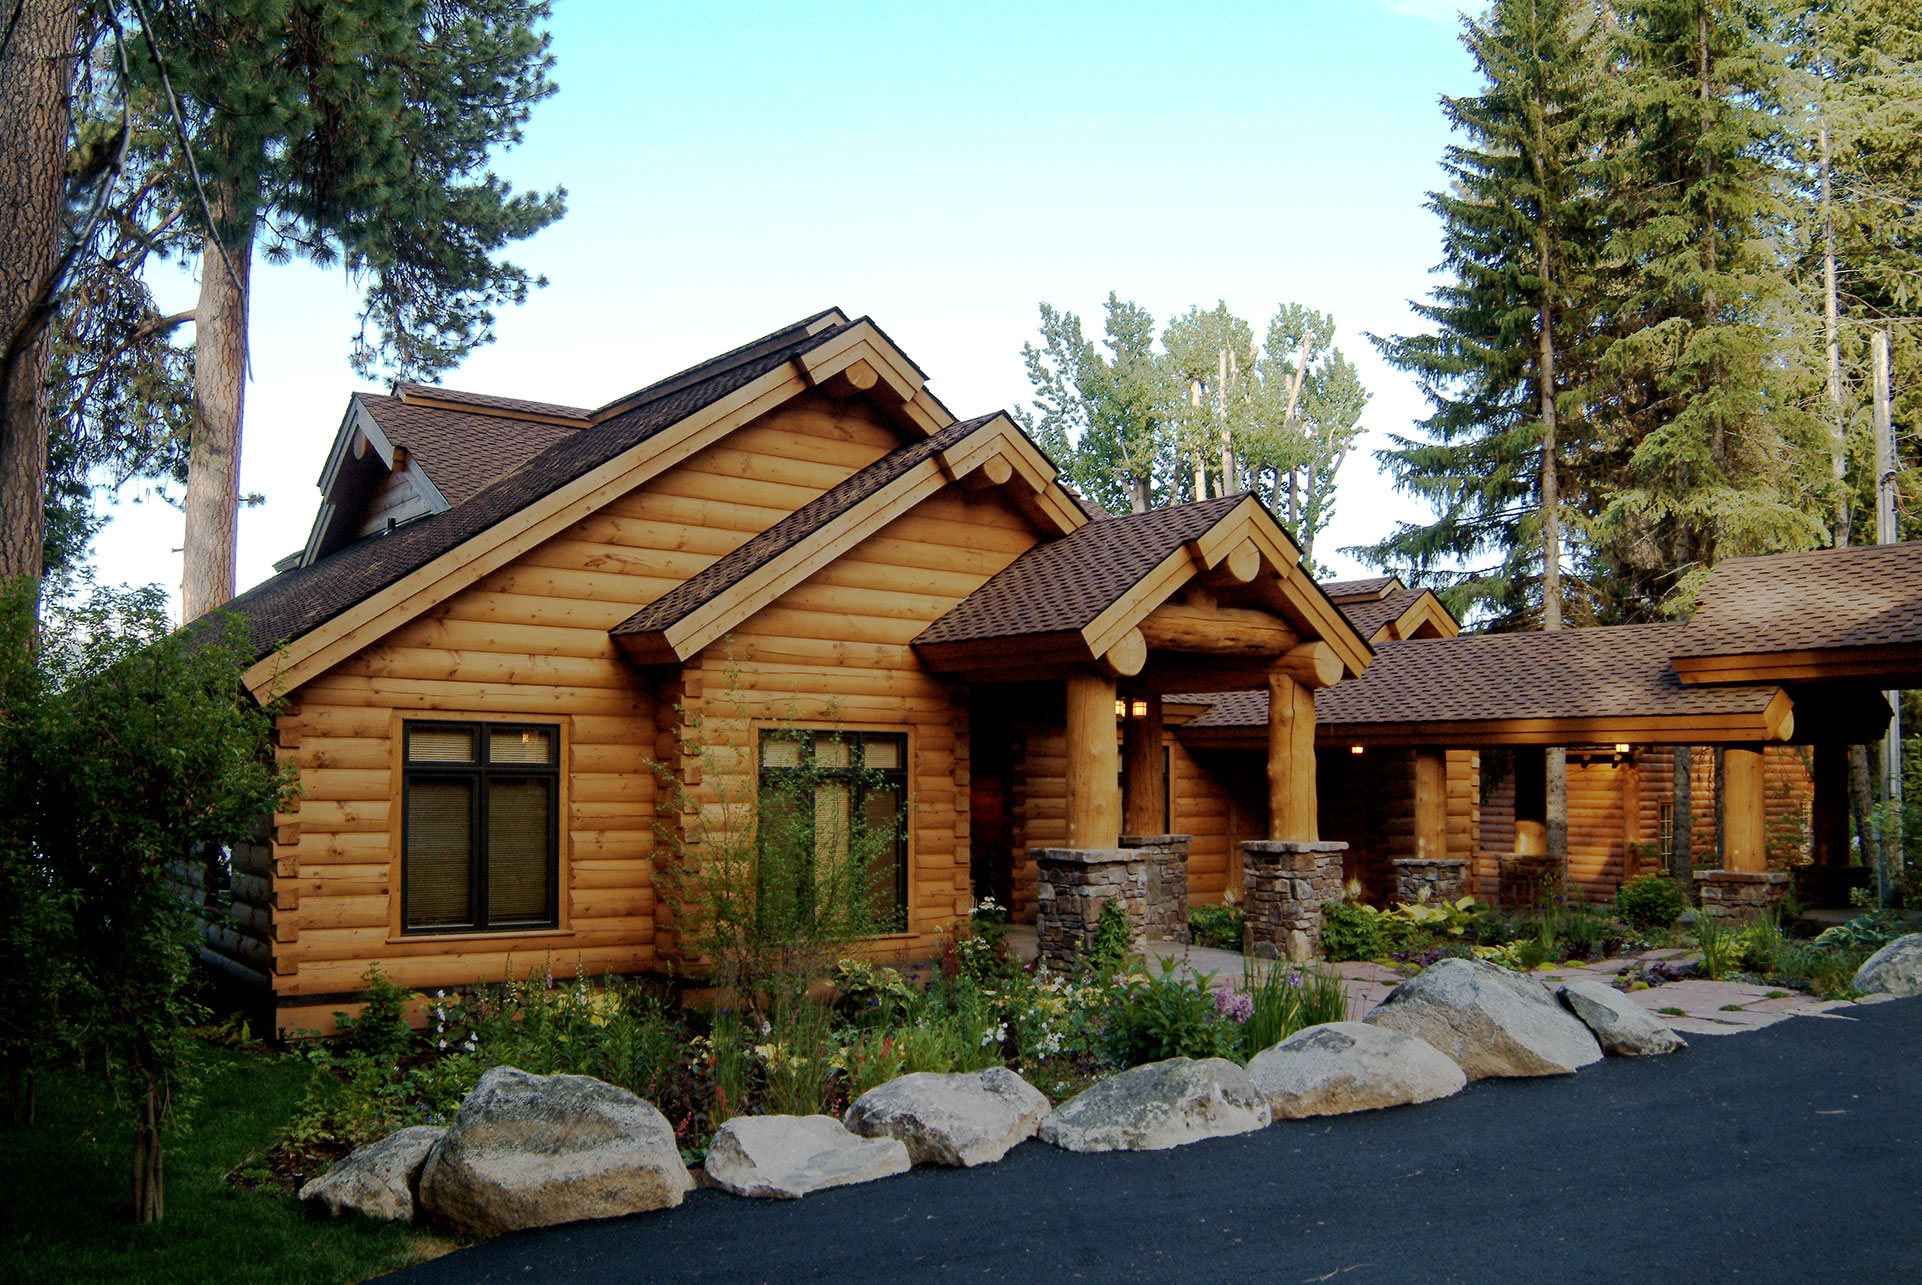 Yellowstone Home Plan from Natural Element Homes